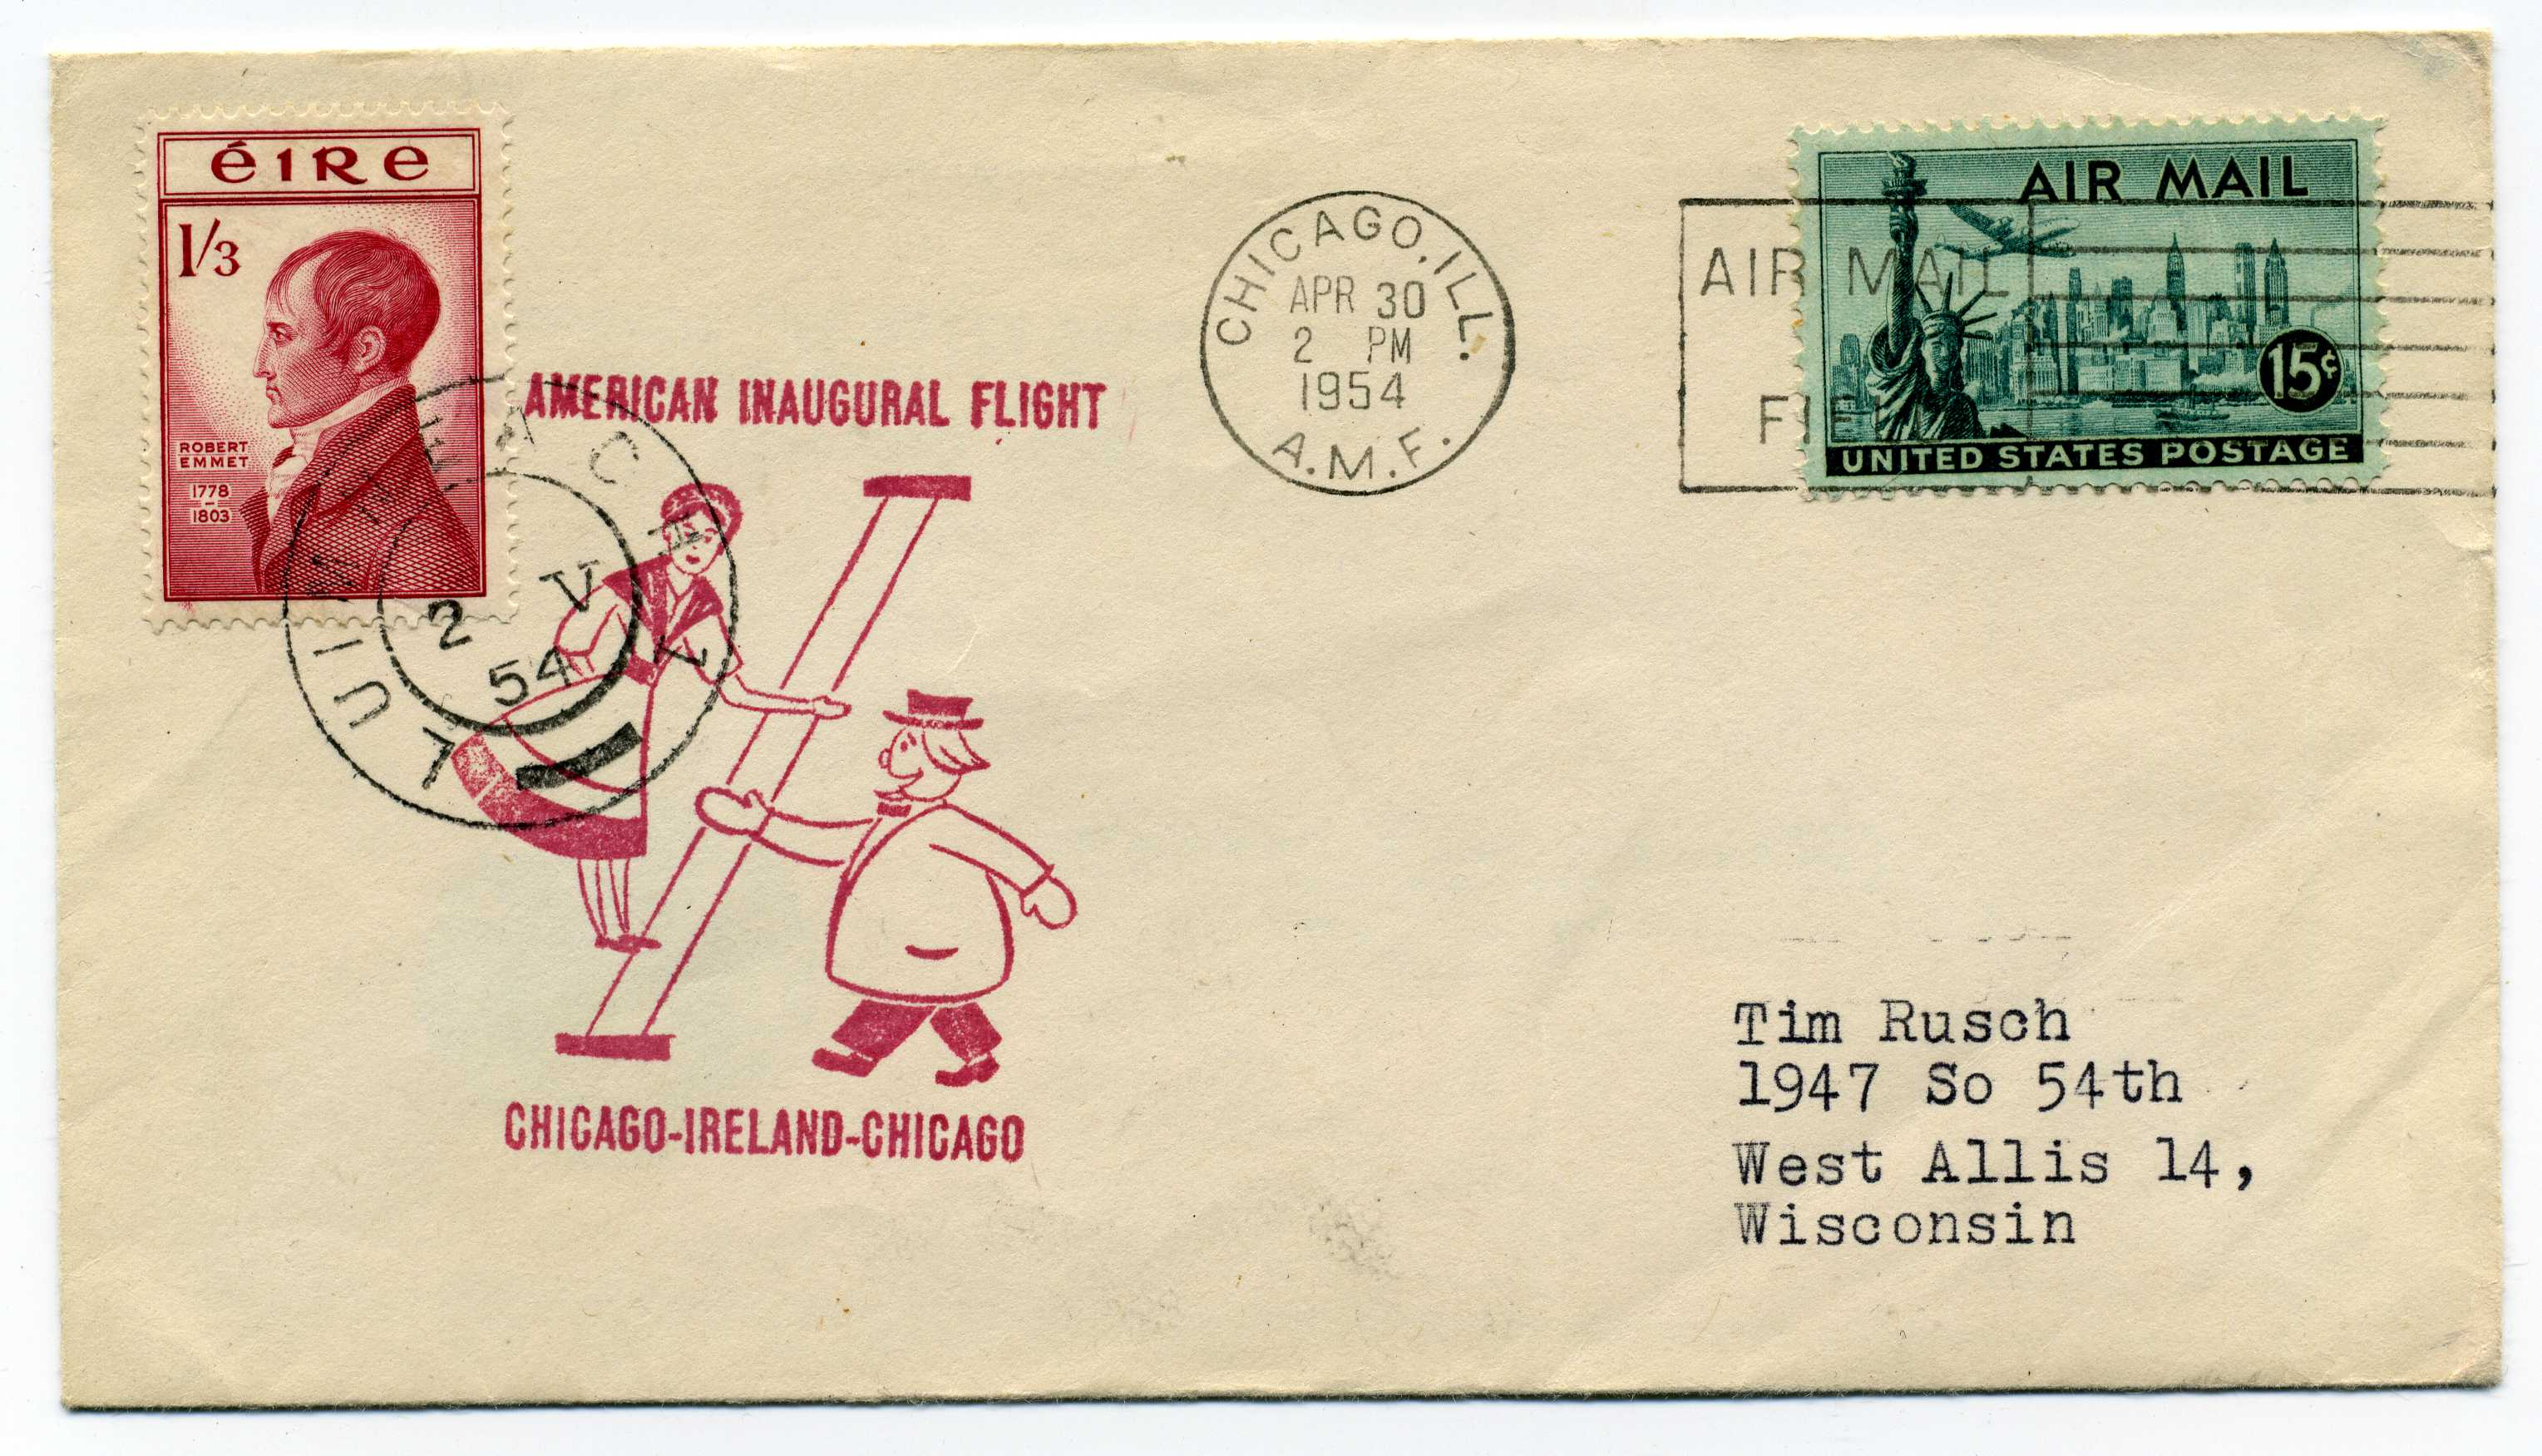 Irish stamps from raven stamps first flight covers image 1954 flight cover chicago publicscrutiny Choice Image